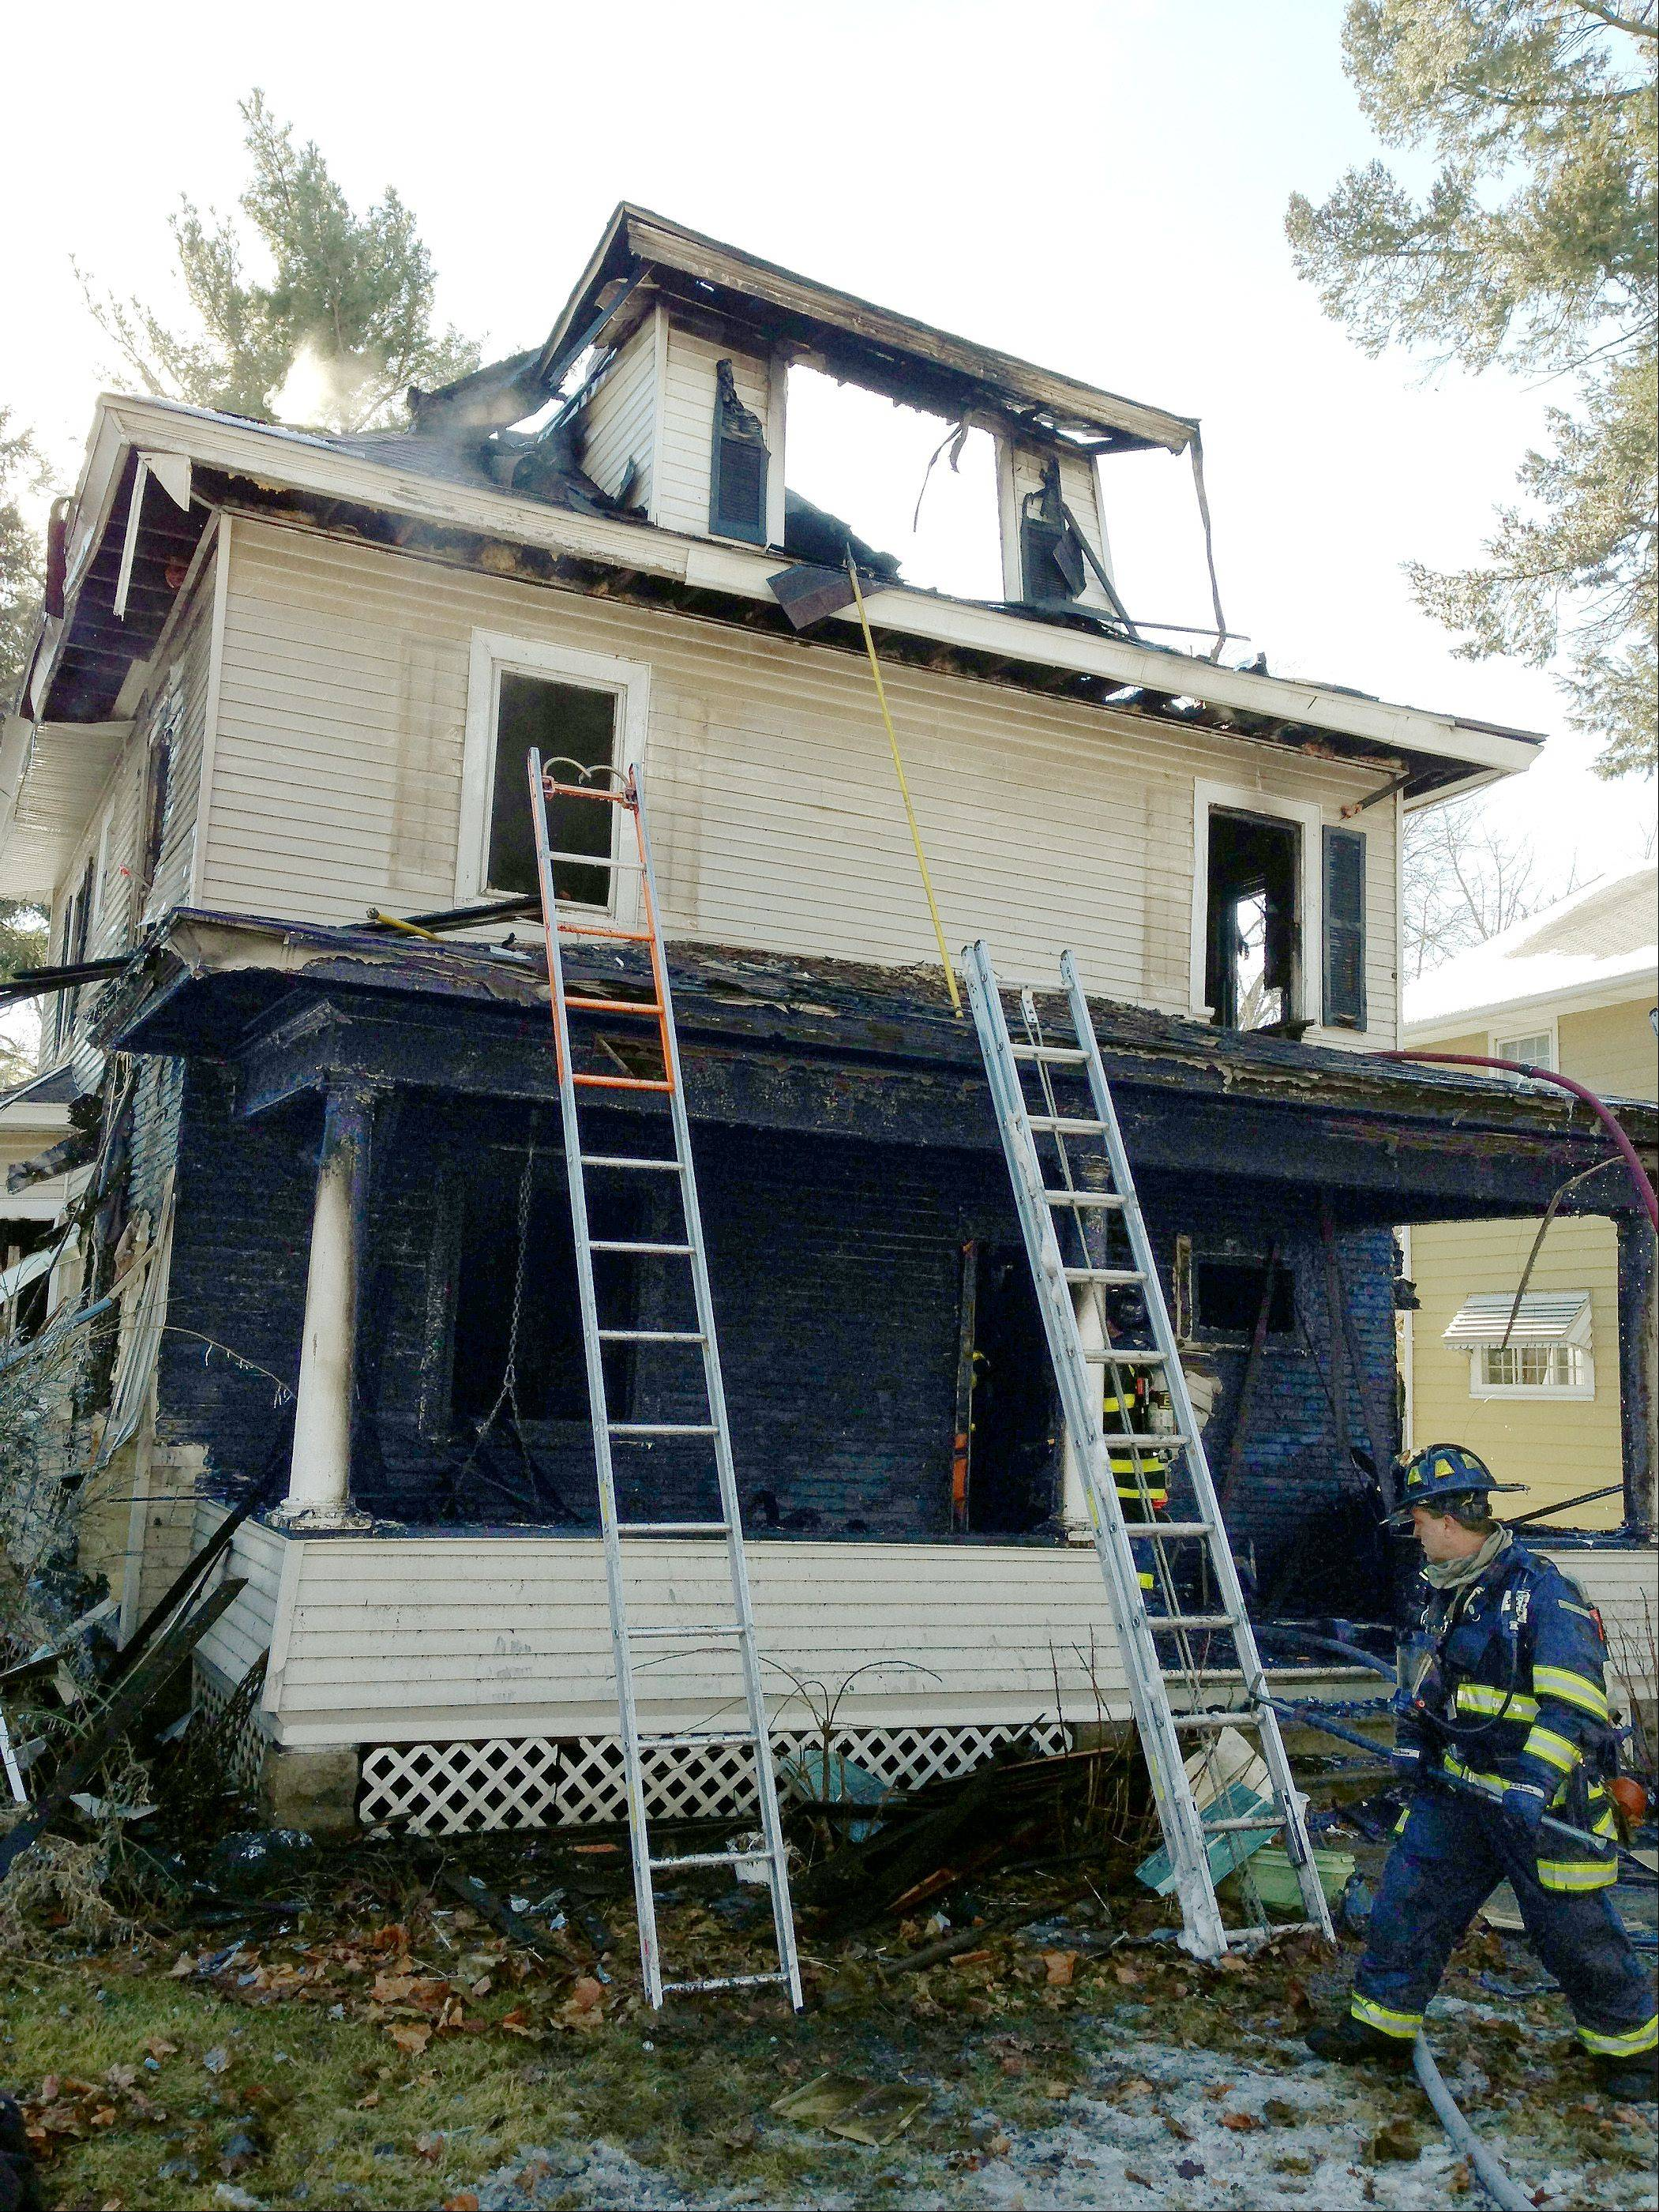 Two people were injured Wednesday in a fire that destroyed this house on the 900 block of Garfield Avenue in Aurora.